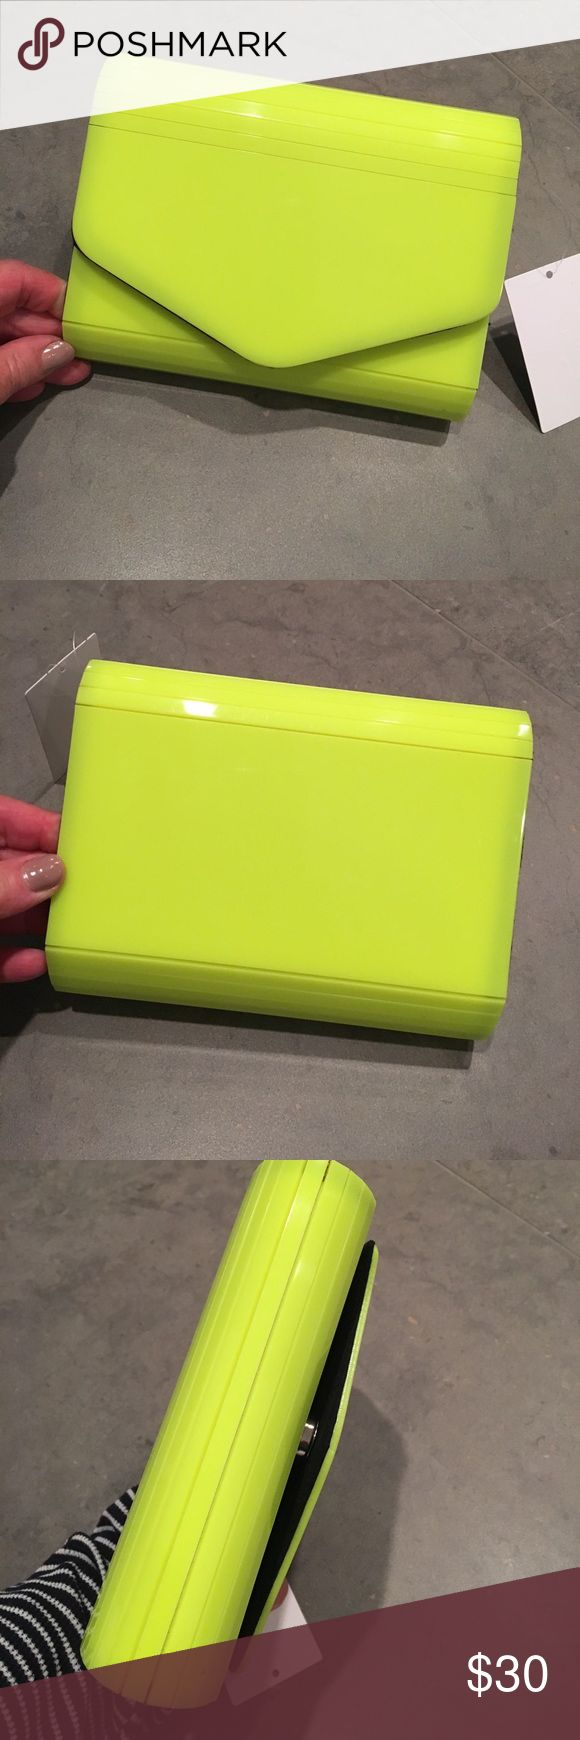 "Neon clutch with chain strap to wear as cross body Neon plastic clutch measures 7"" x 5.5"" with 47"" chain strap to carry as cross body purse.  NWT Bags Clutches & Wristlets"